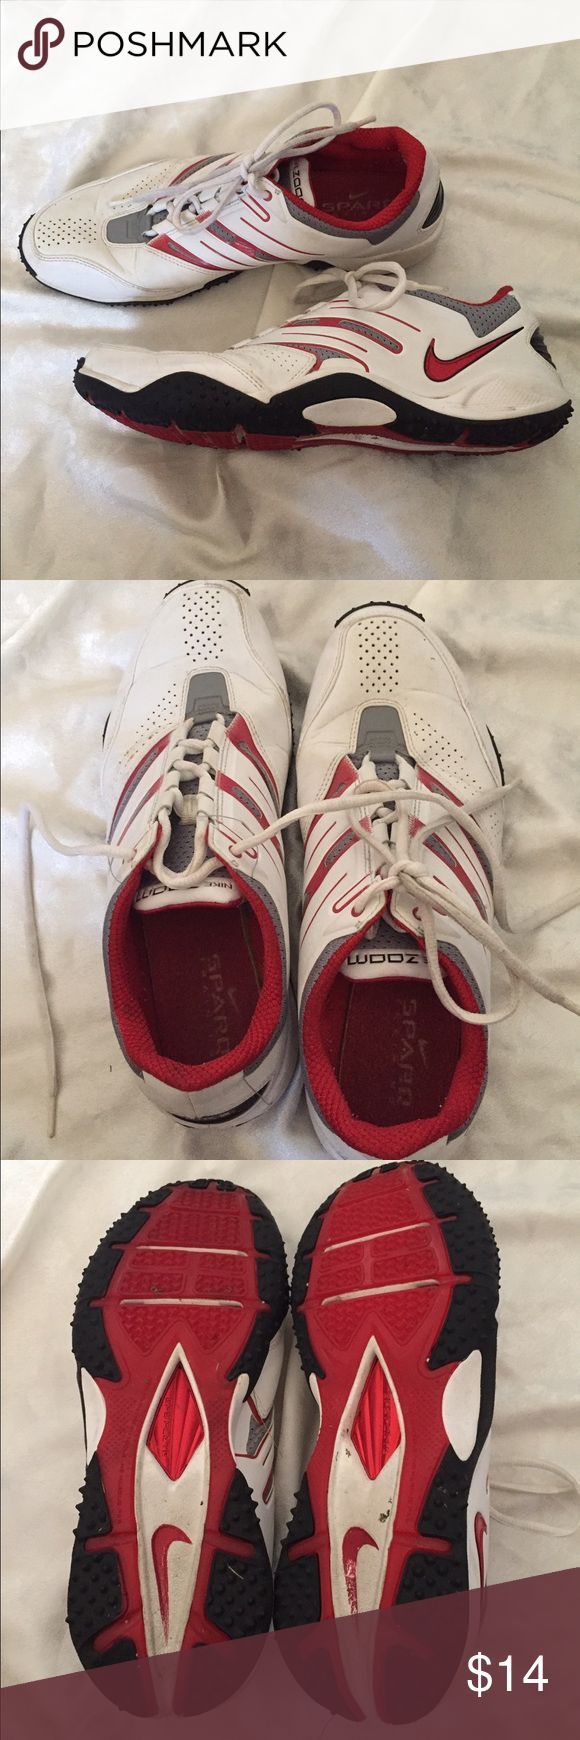 Men's Nike Zoom Sparq Men's Nike Zoom Sparq running shoes. Used but good condition. There are a few scuffs and marks on the front and back but they have a lot of life left! Nike Shoes Athletic Shoes